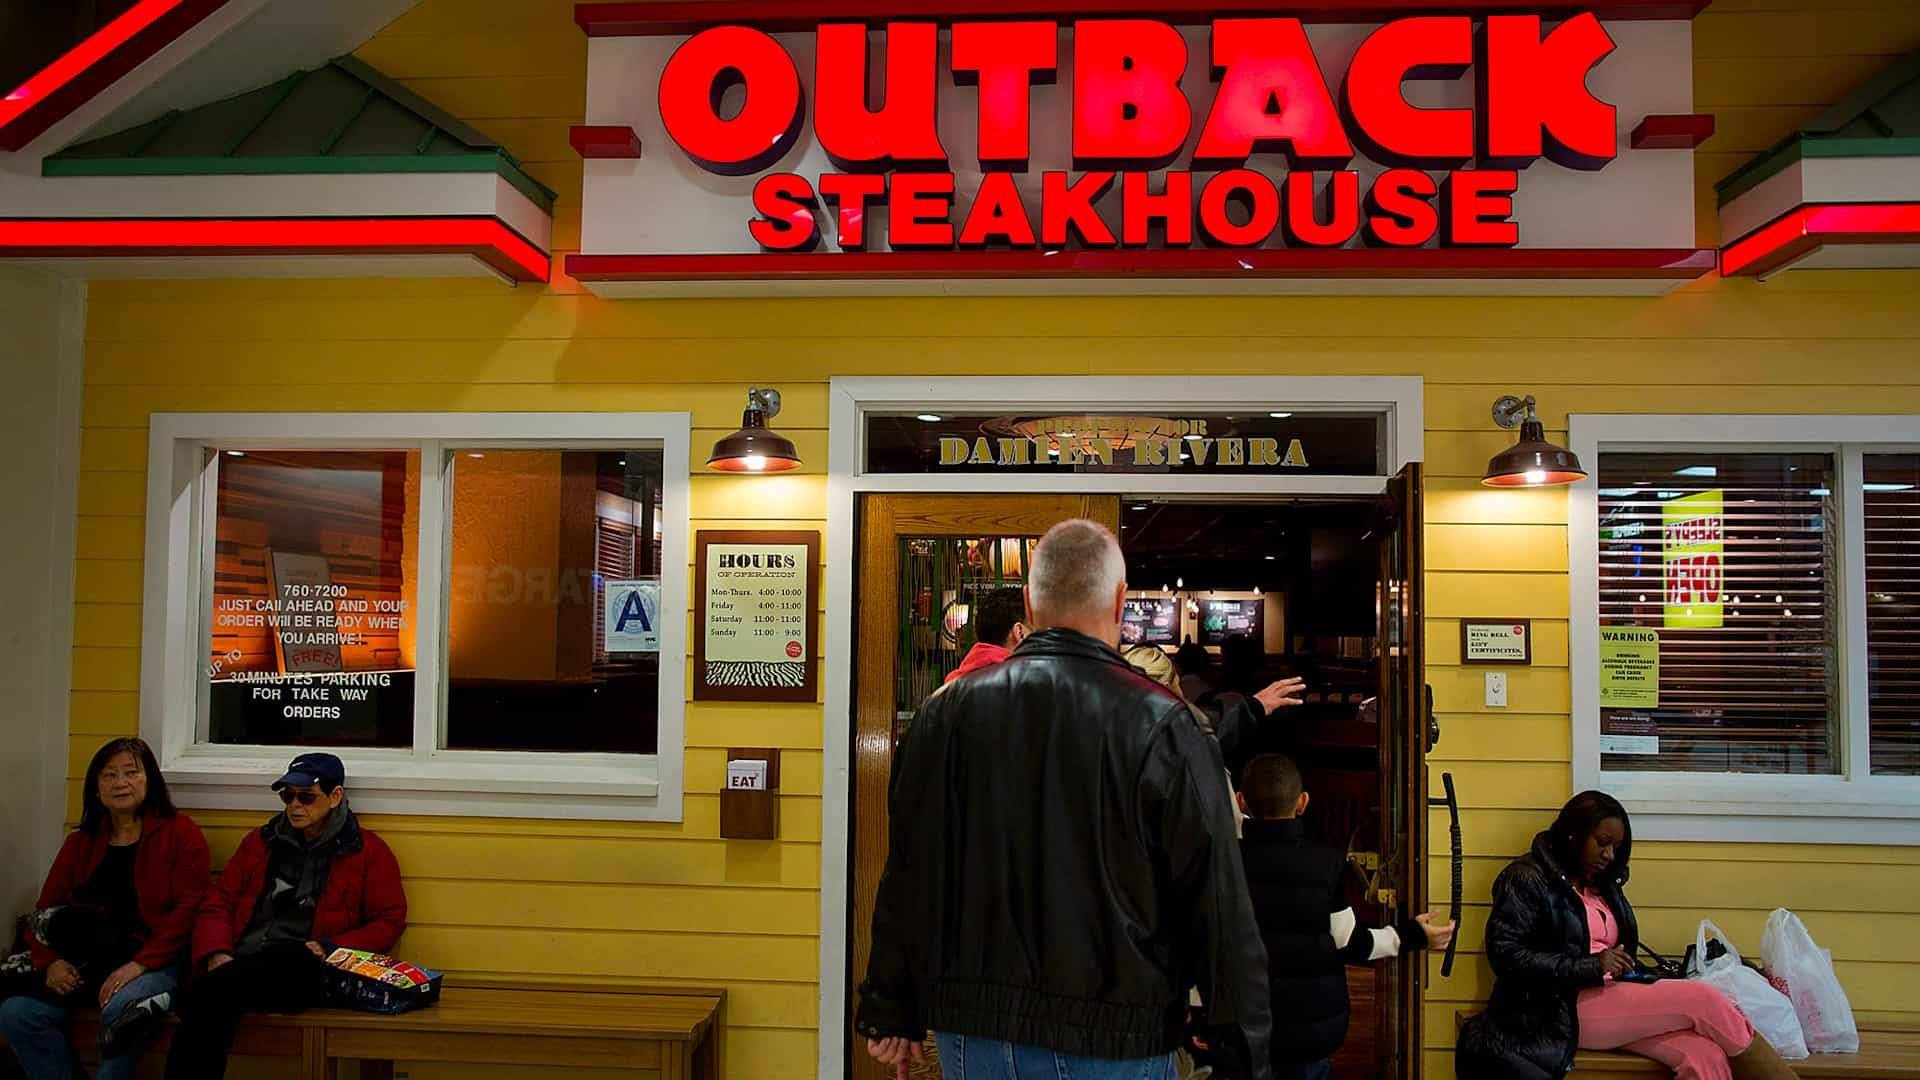 Top 12 Outback Steakhouse Secrets That Aren't On The Menu!